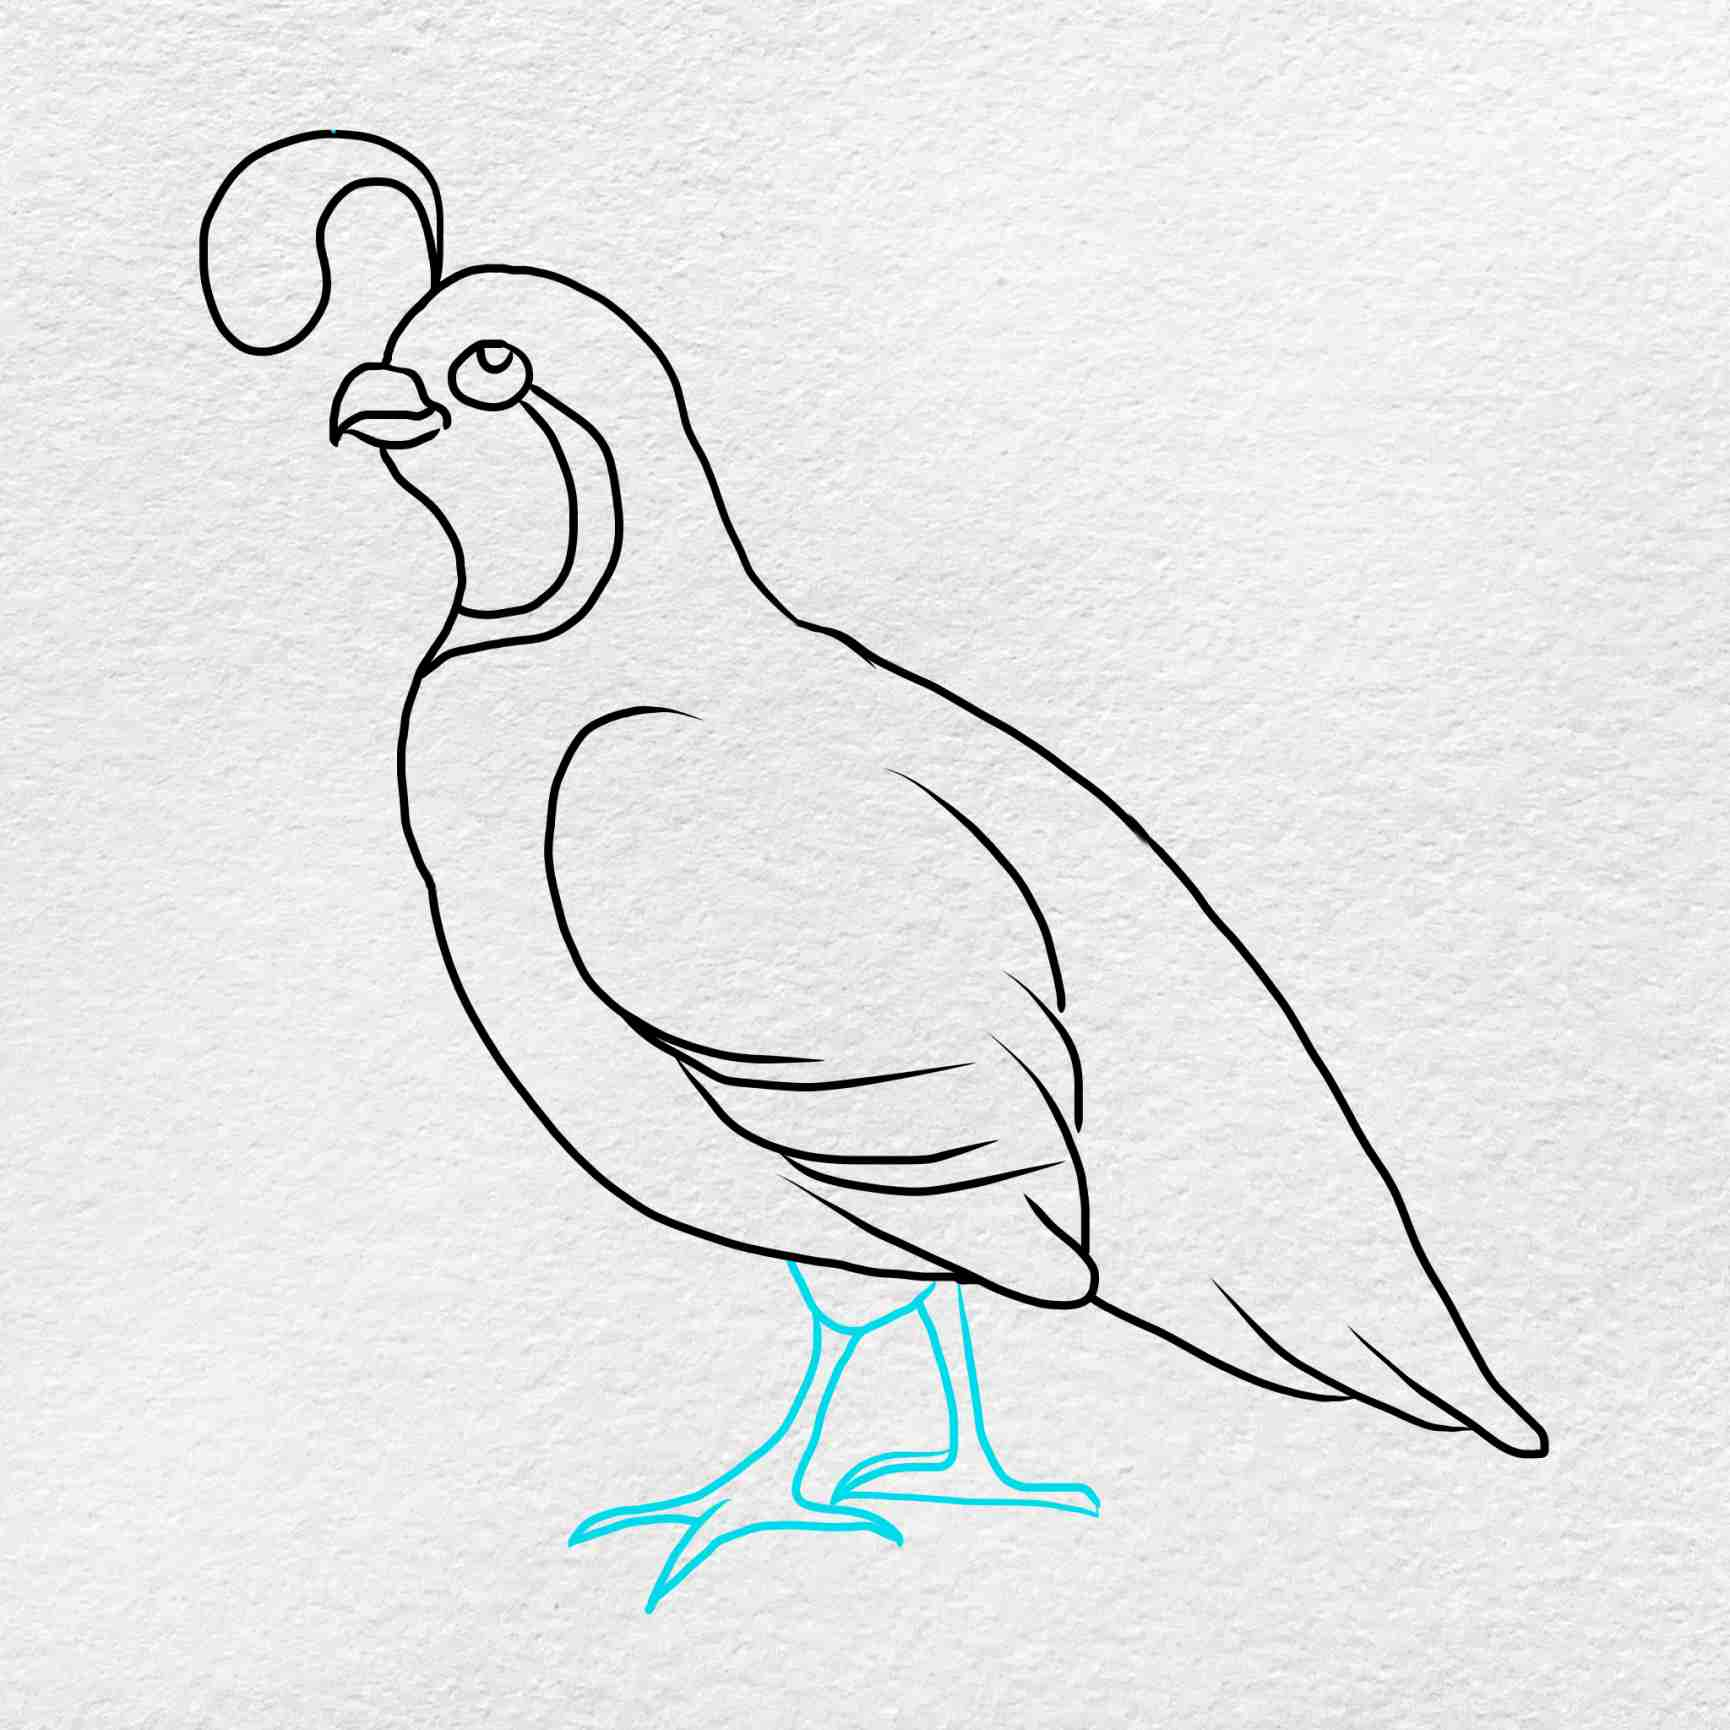 How To Draw A Quail: Step 5